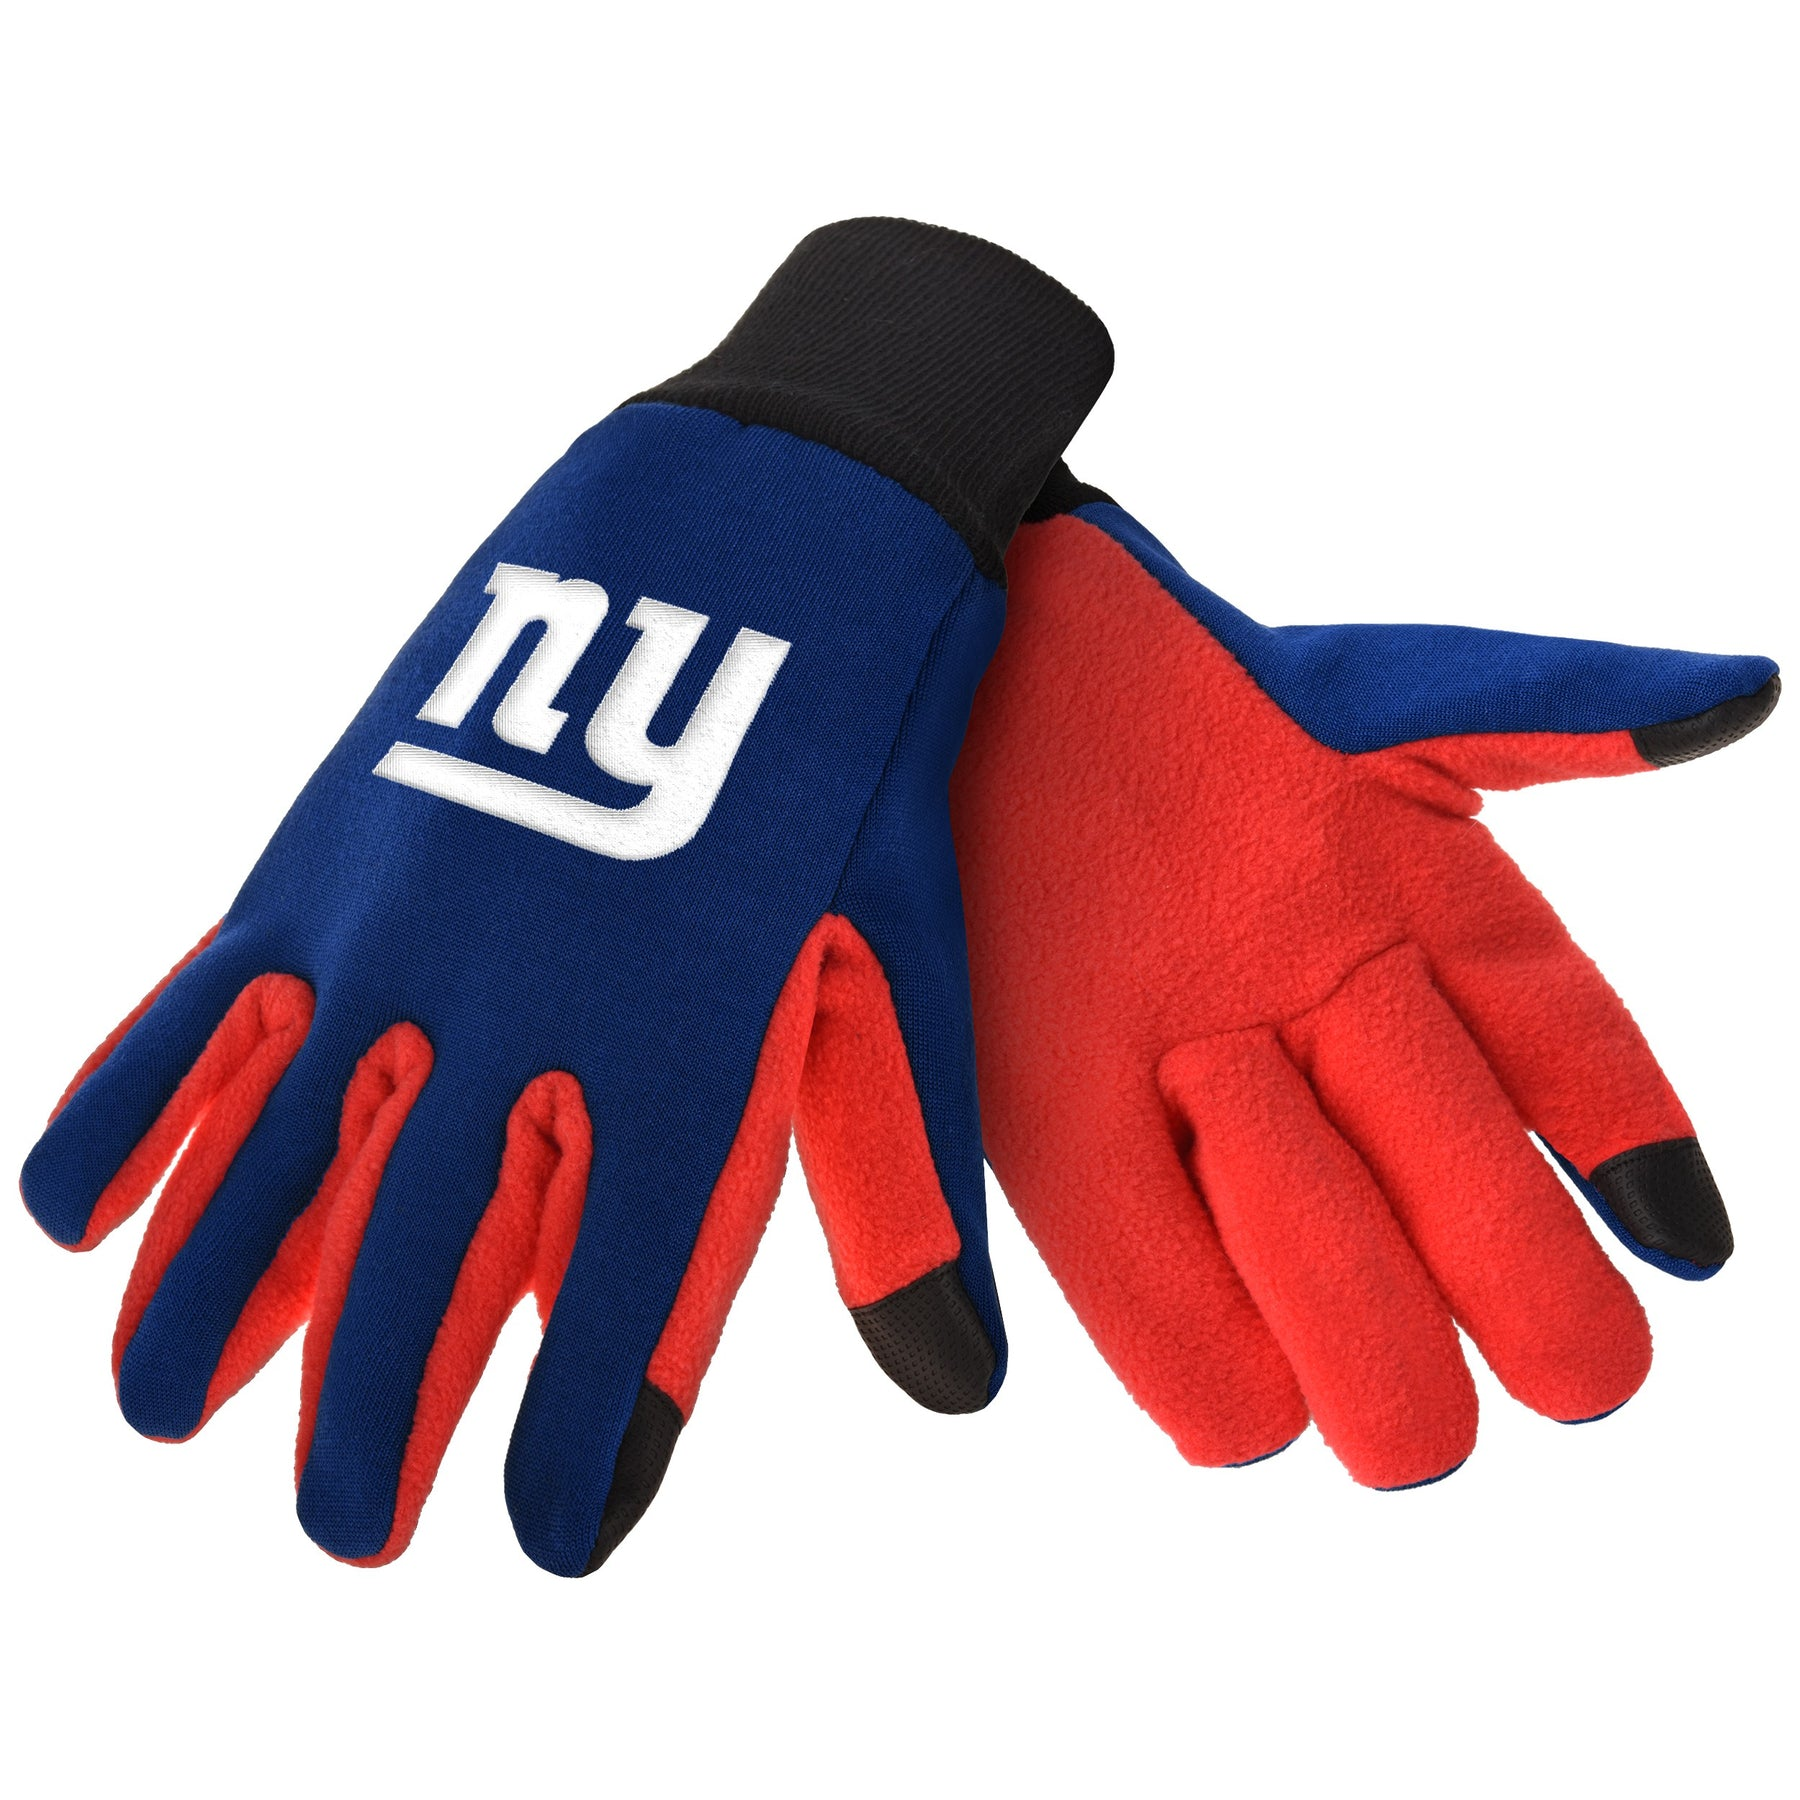 New York Giants NFL Football Texting Gloves - Dynasty Sports   Framing f384ba6e9